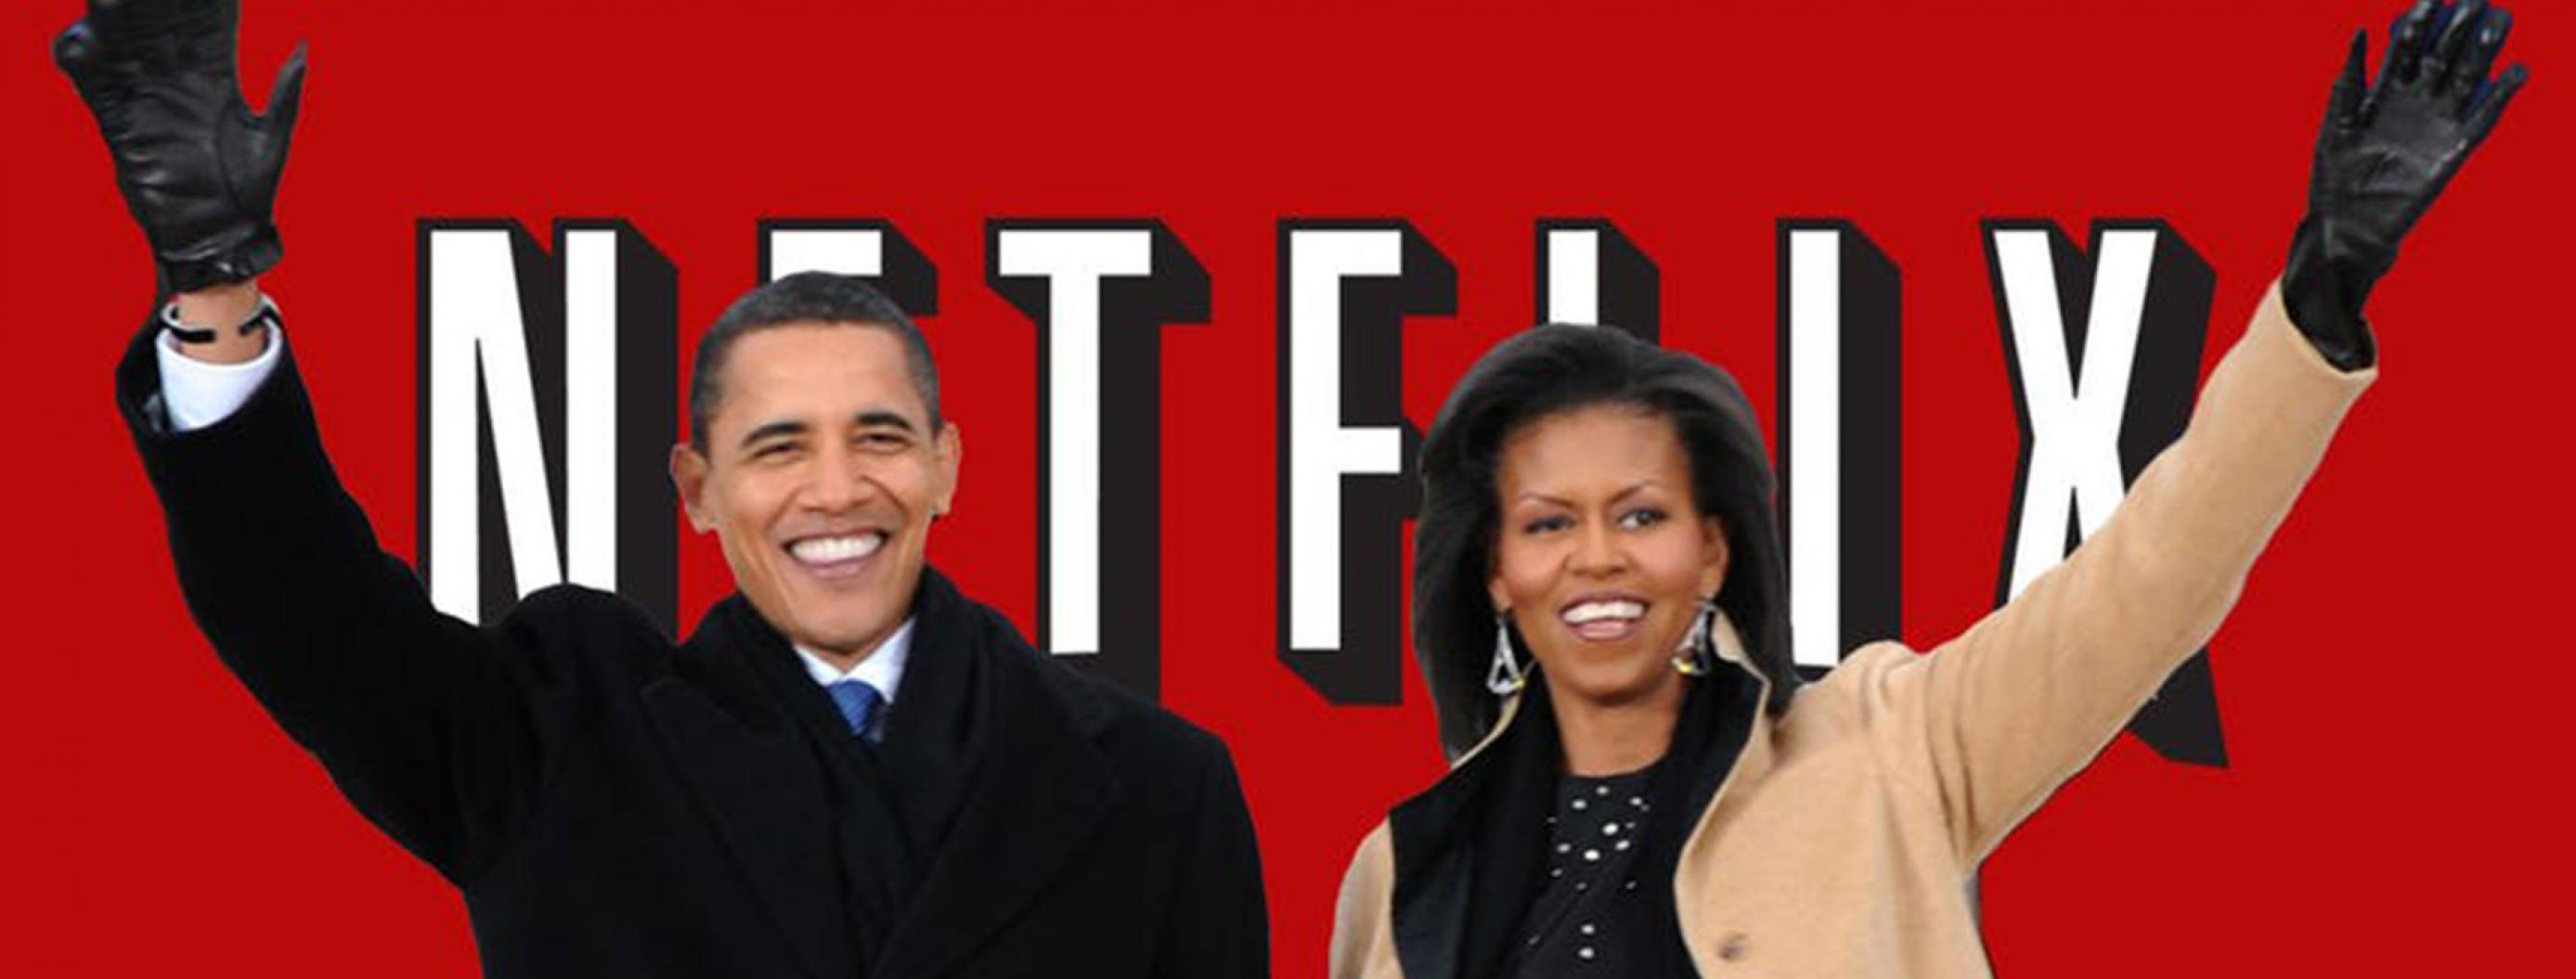 Obamas Sign a Multi-Year Netflix Production Deal